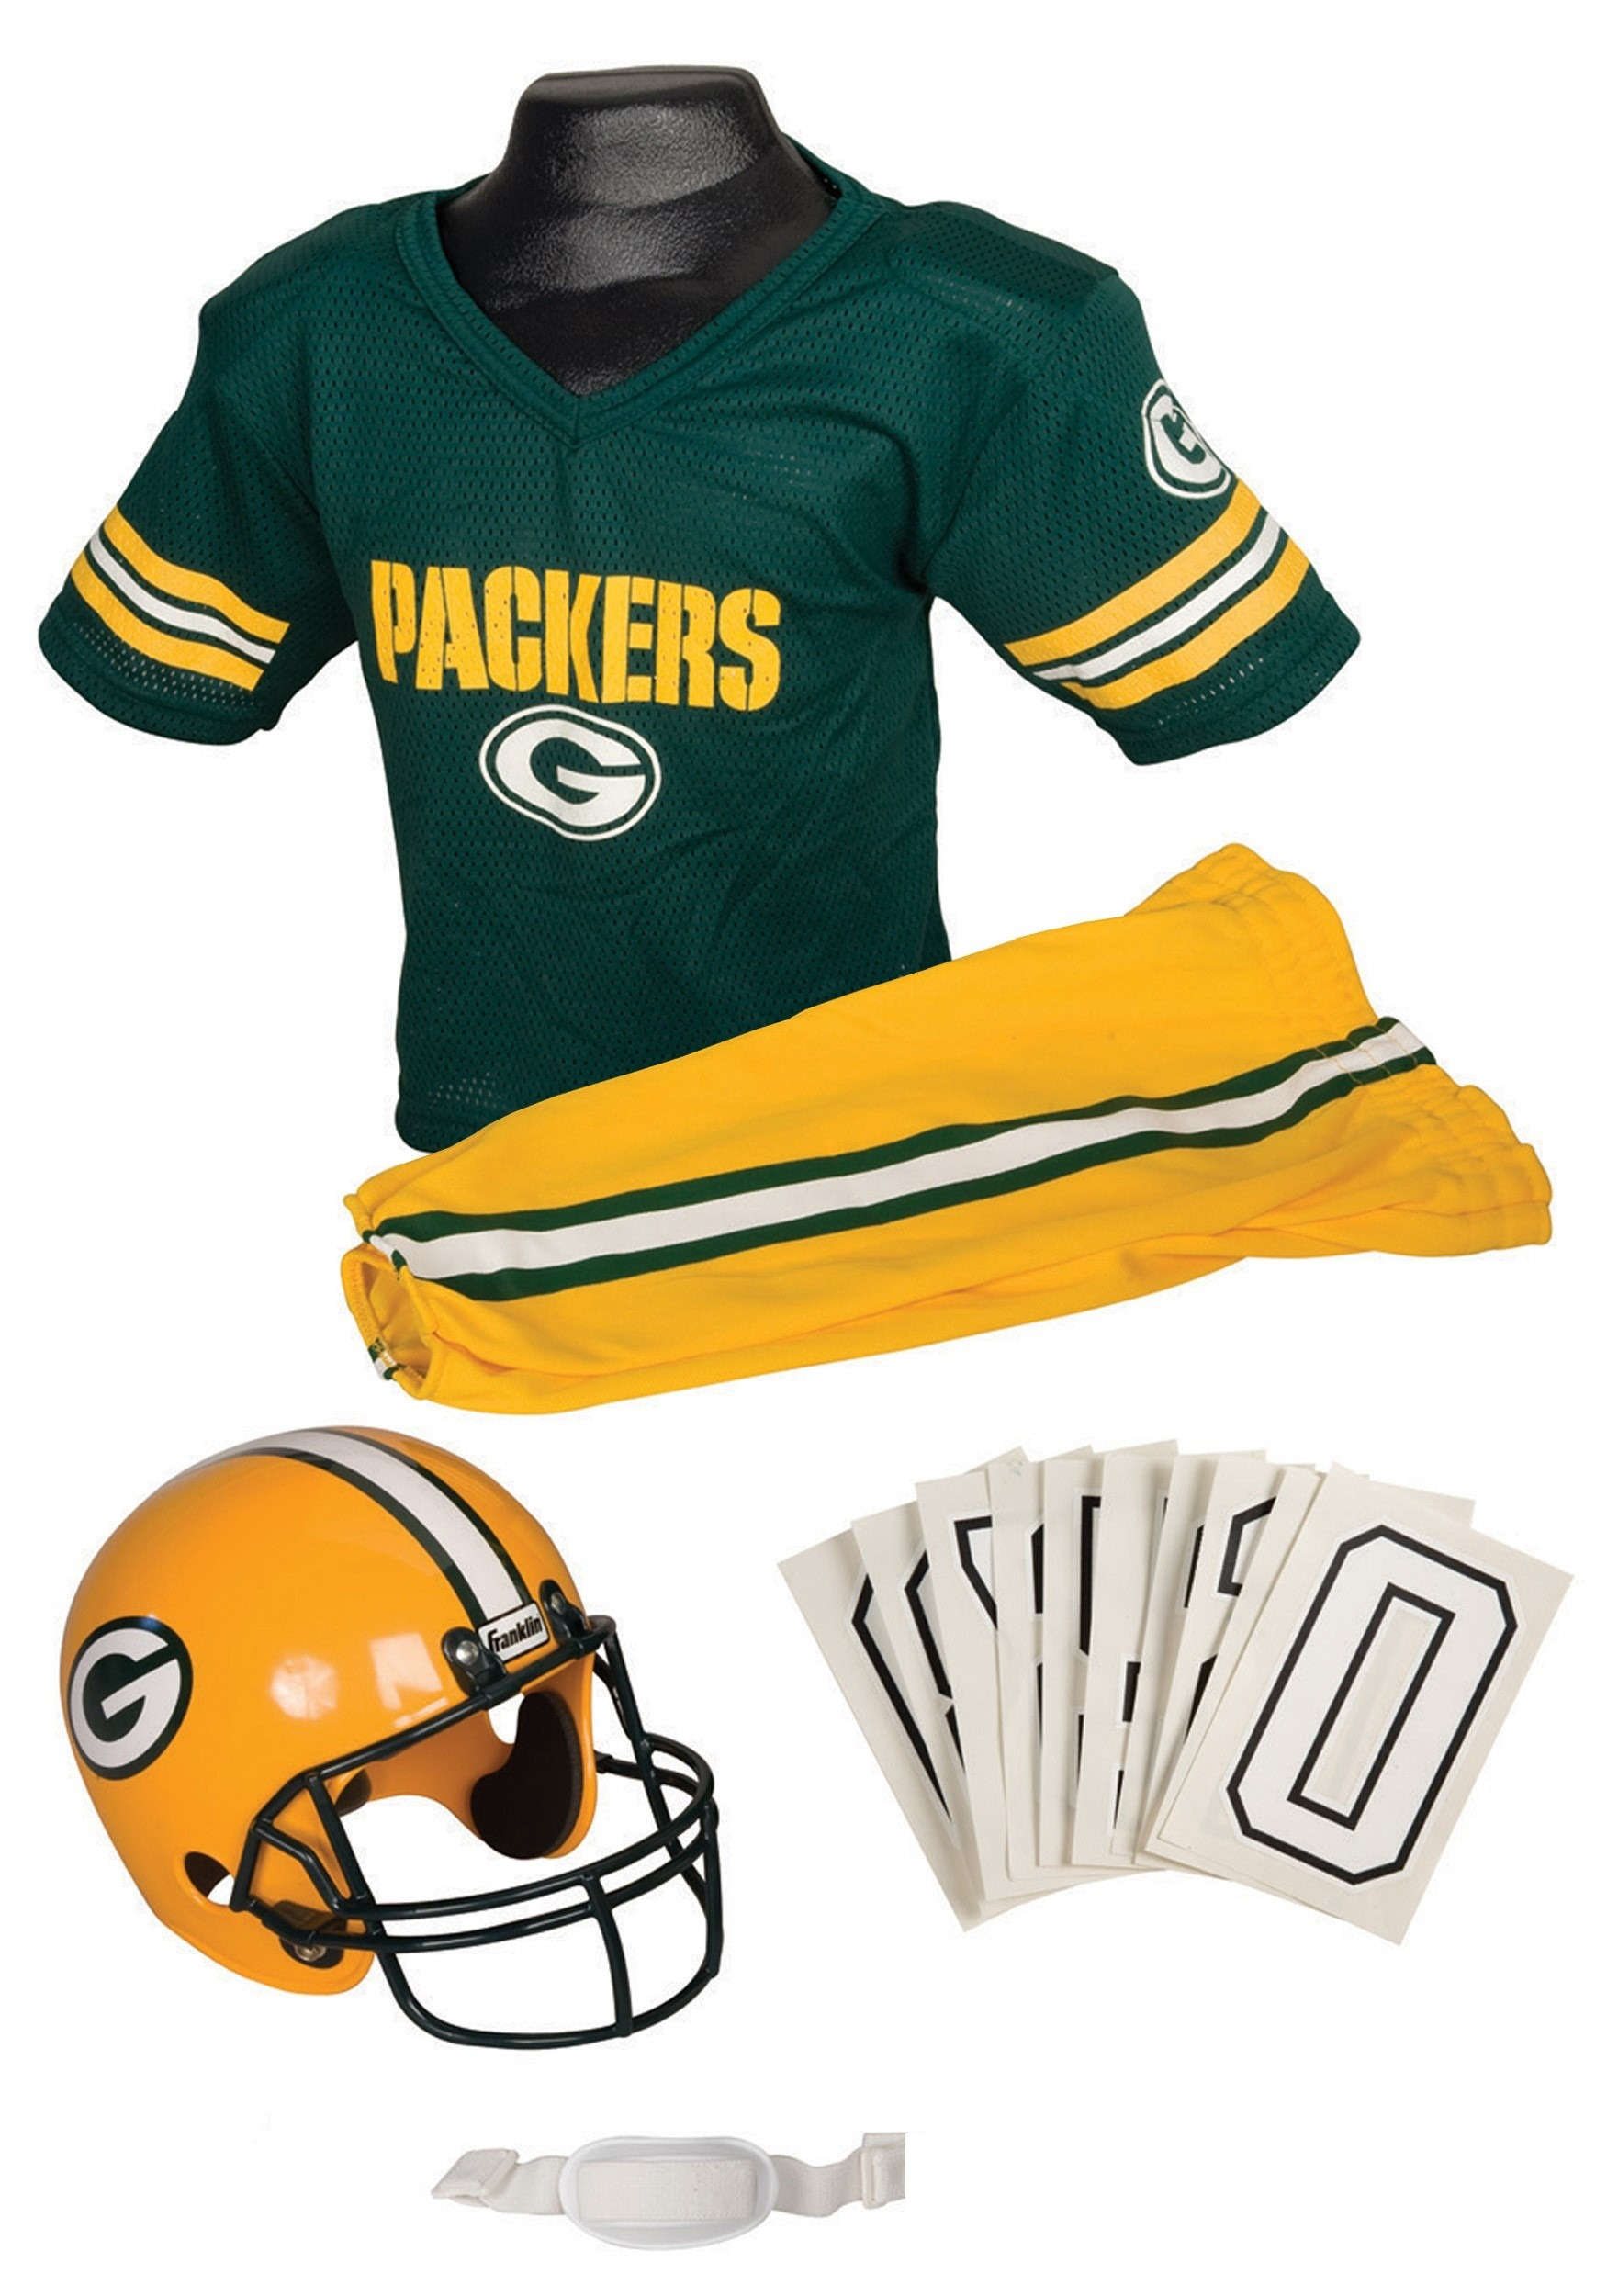 NFL Packers Uniform Costume